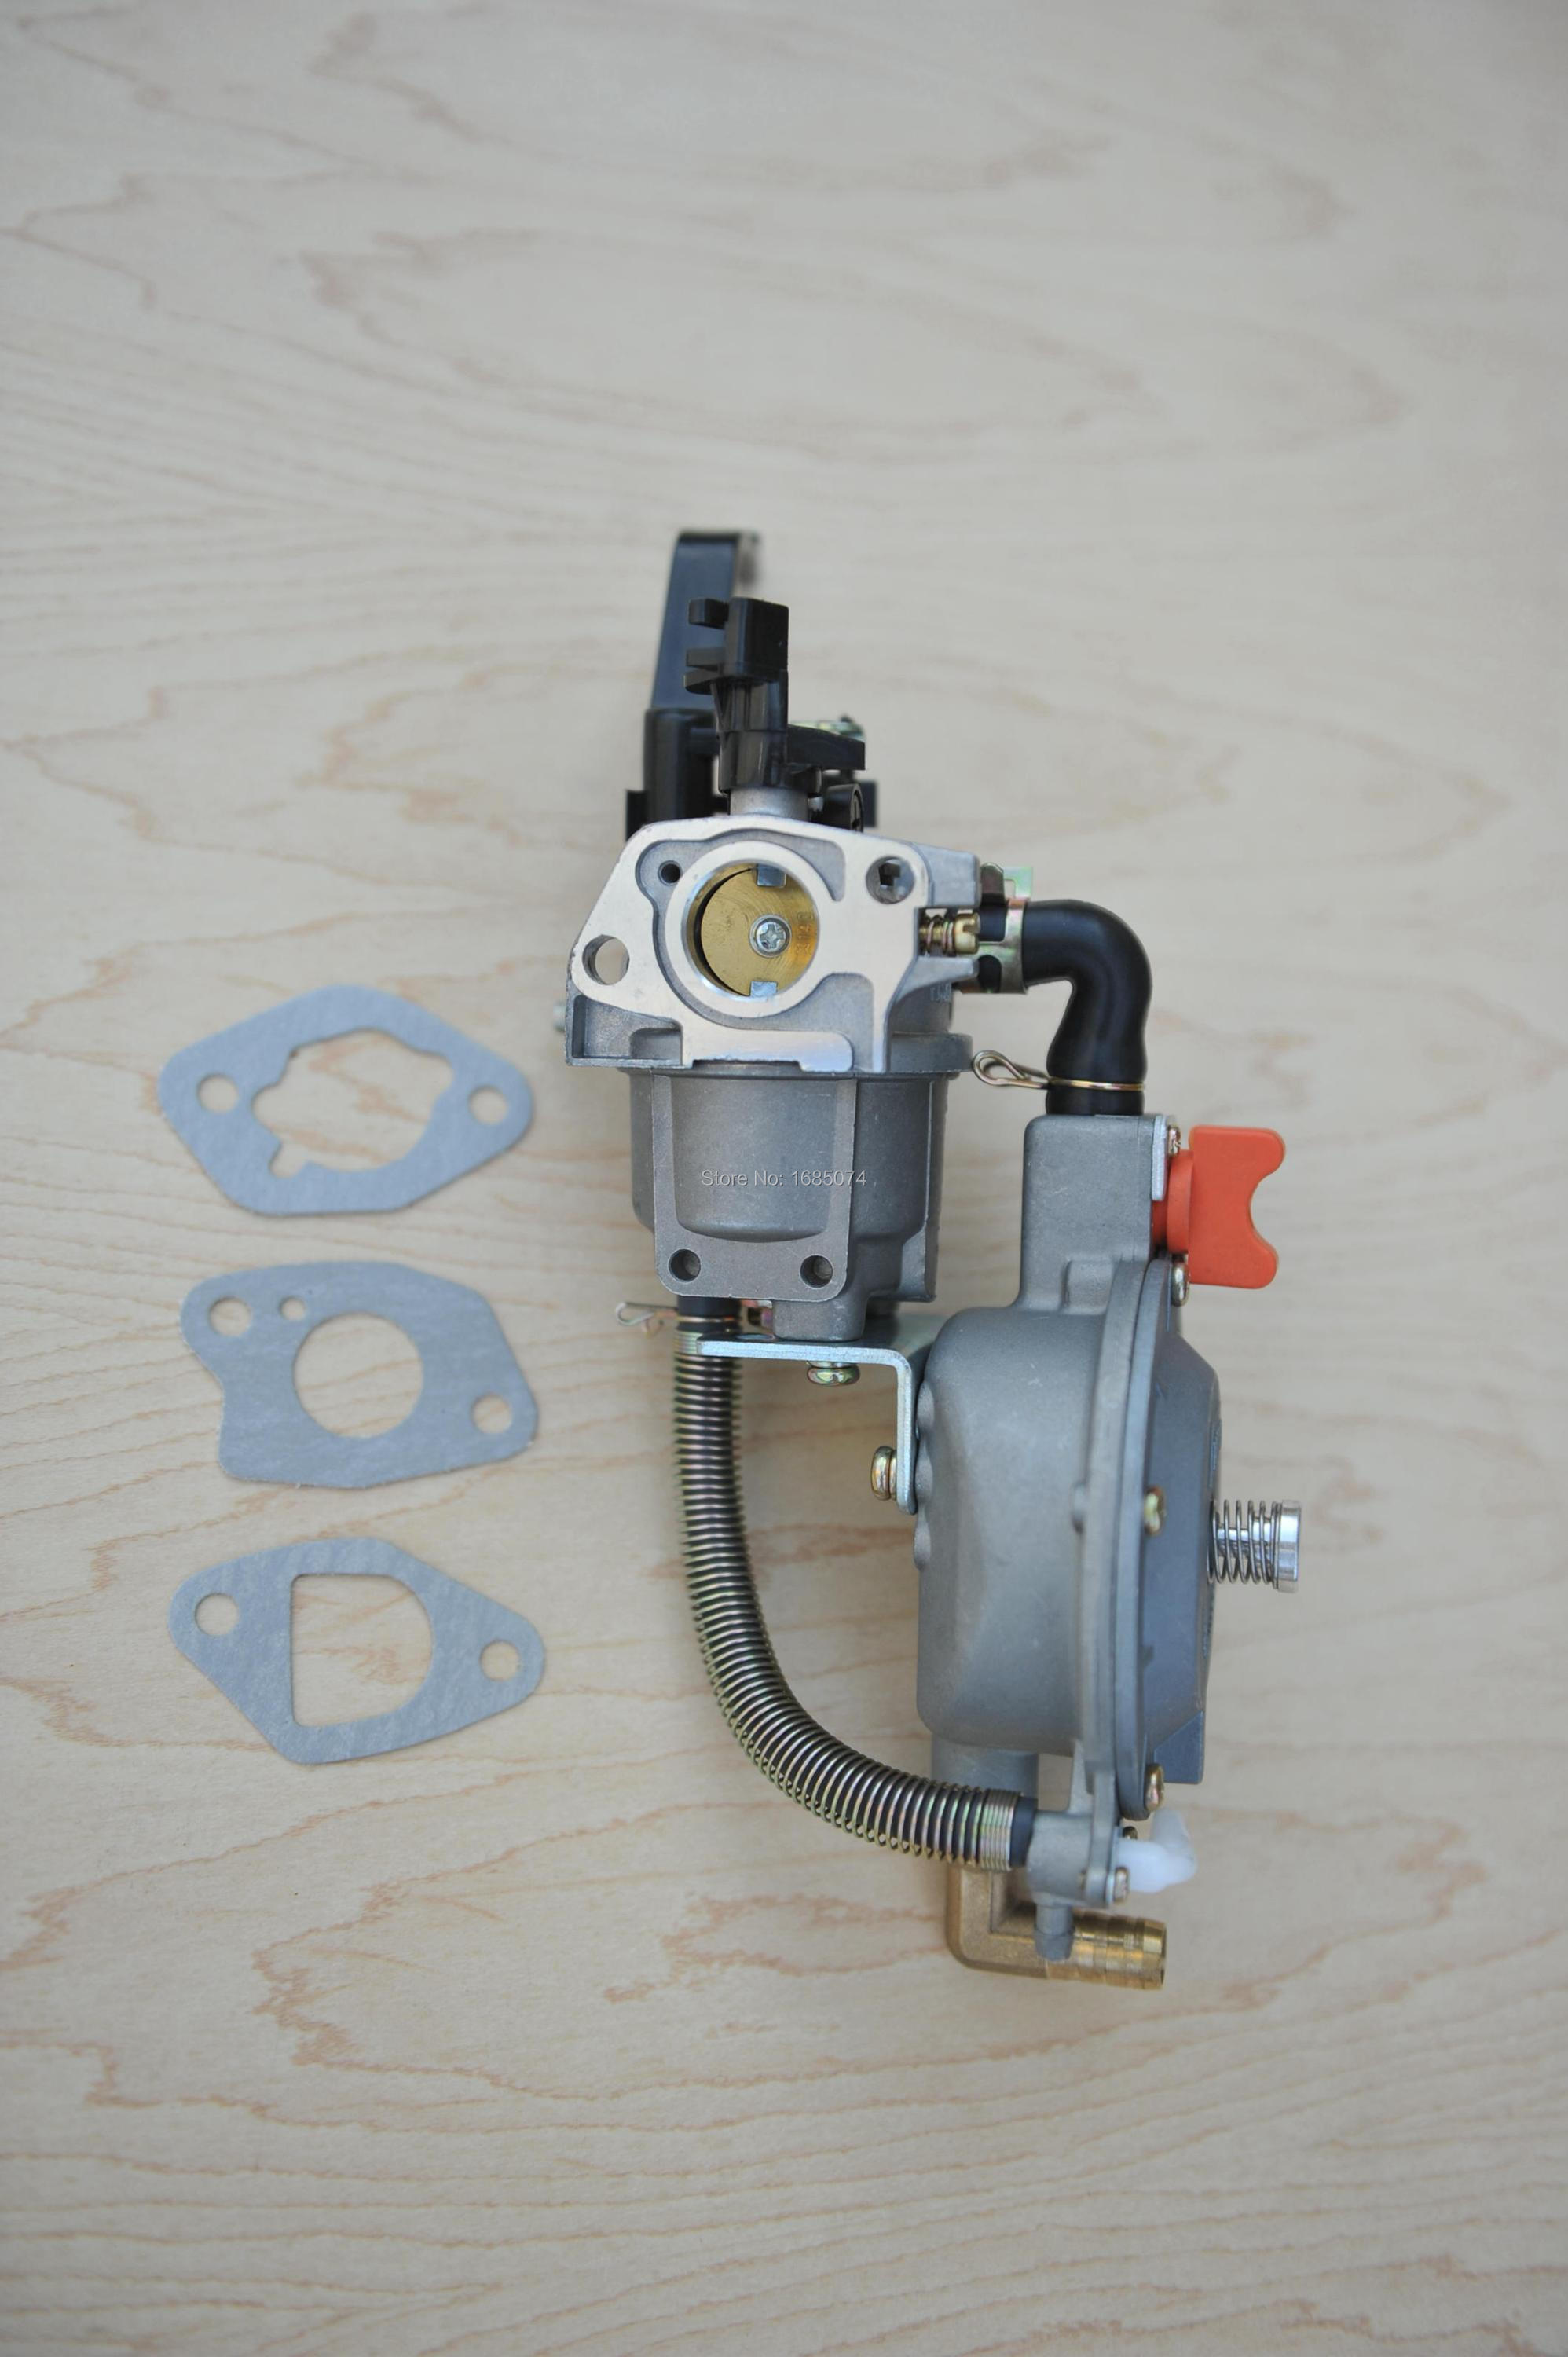 dual fuel carburetor for gasoline generator LPG NG propane